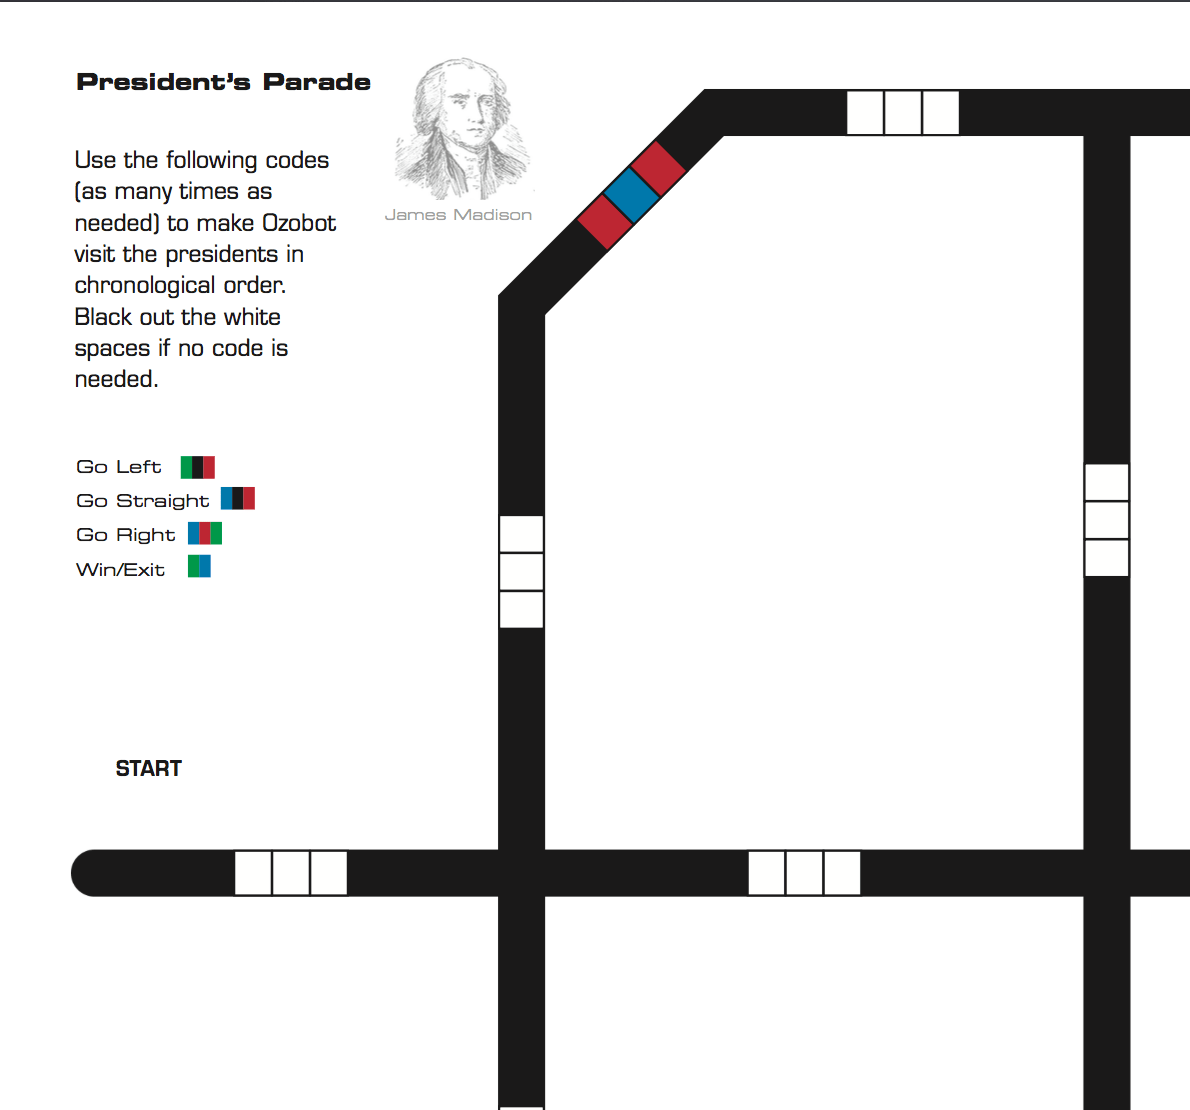 Ozobot Code Paper Pictures To Pin